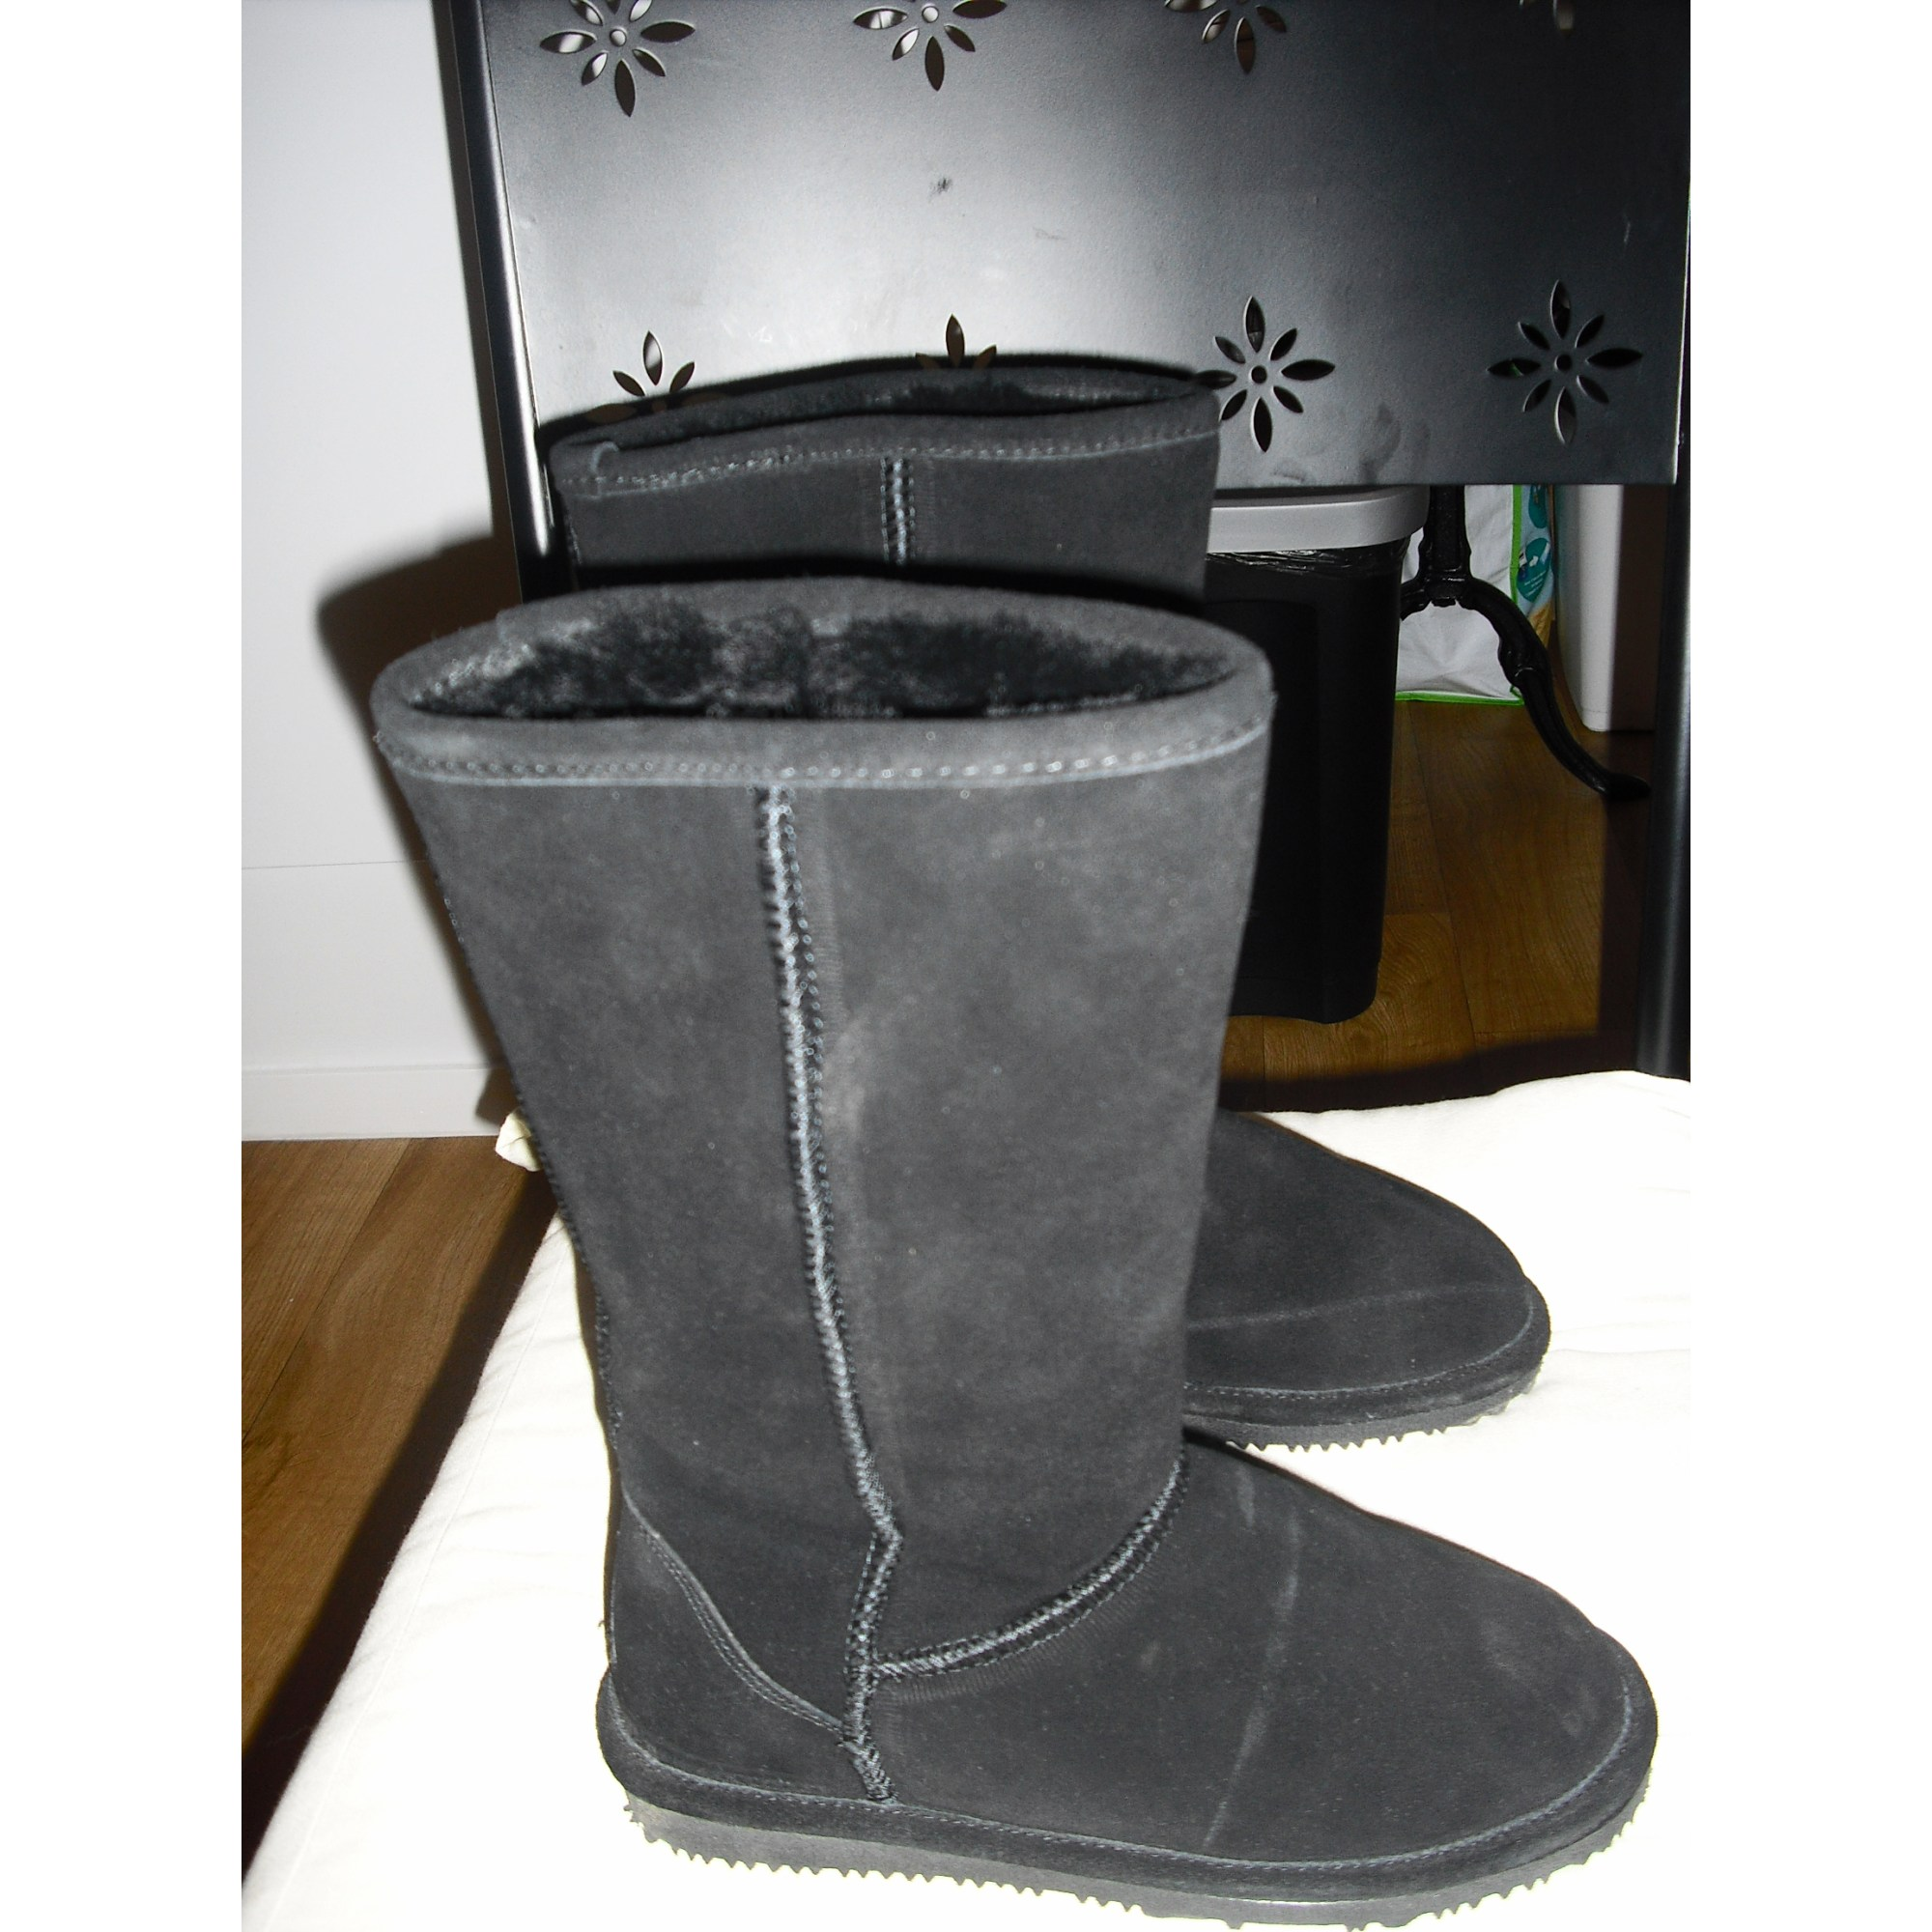 Flat Boots Nice Bay 37 Black 6741775 Boot Suede 2cm